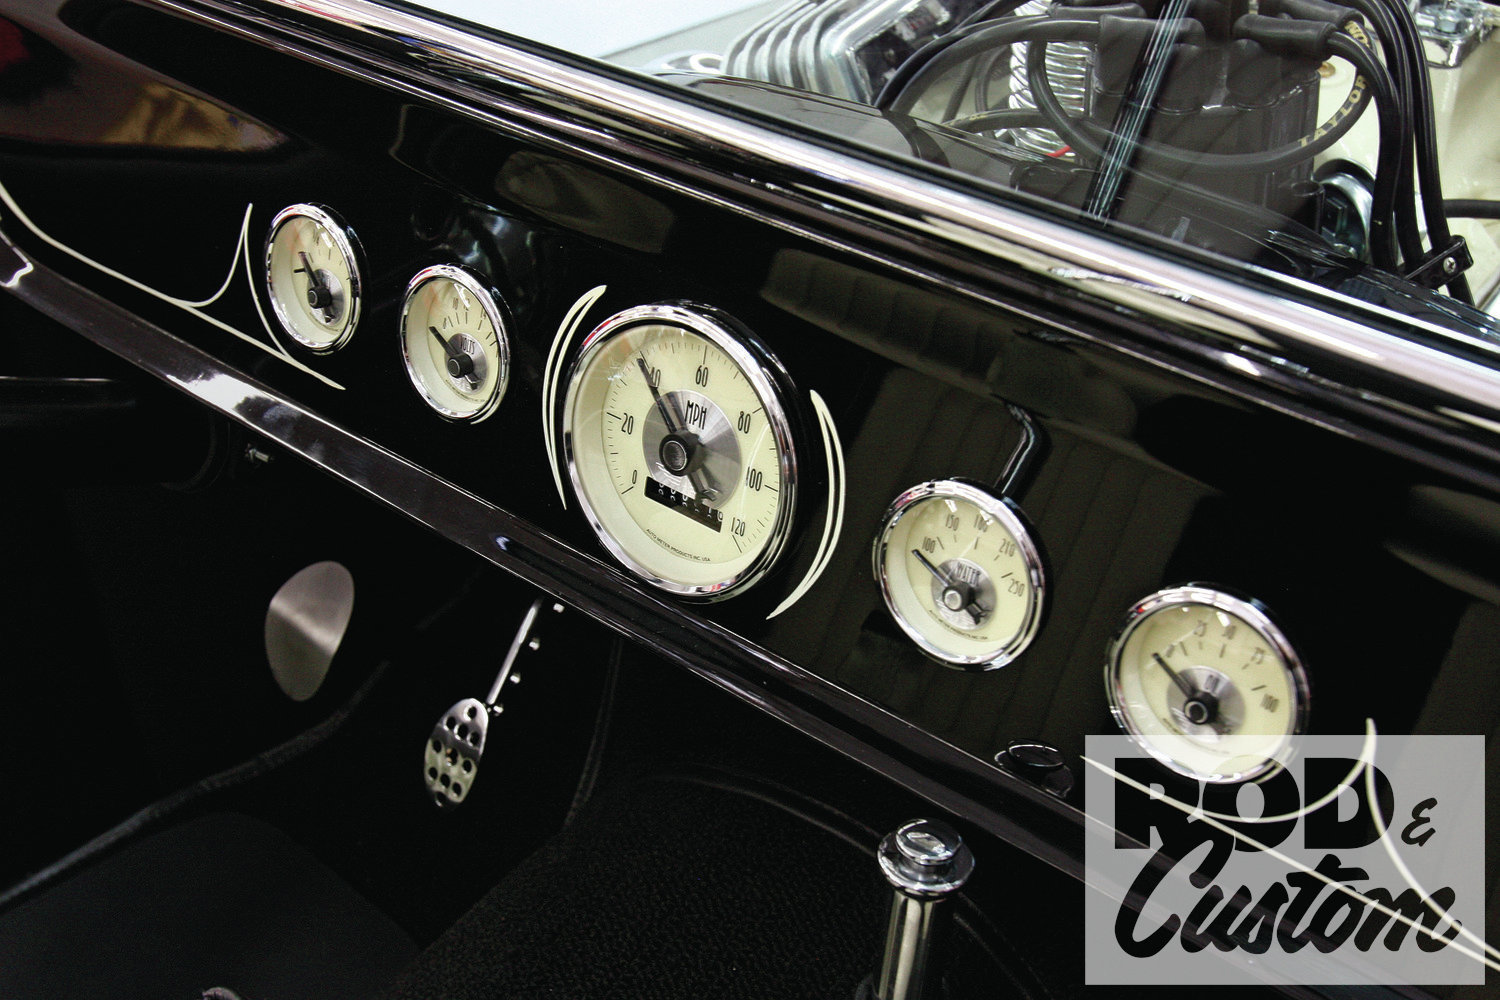 """Jumping ahead slightly, the Auto Meter Prestige Antique Ivory gauges perfectly suit the style and color scheme of the Tribute T. They also feature plastic """"cups"""" on the rear rather than metal C-brackets, and hand-tightening knurled nuts, making installation a breeze."""